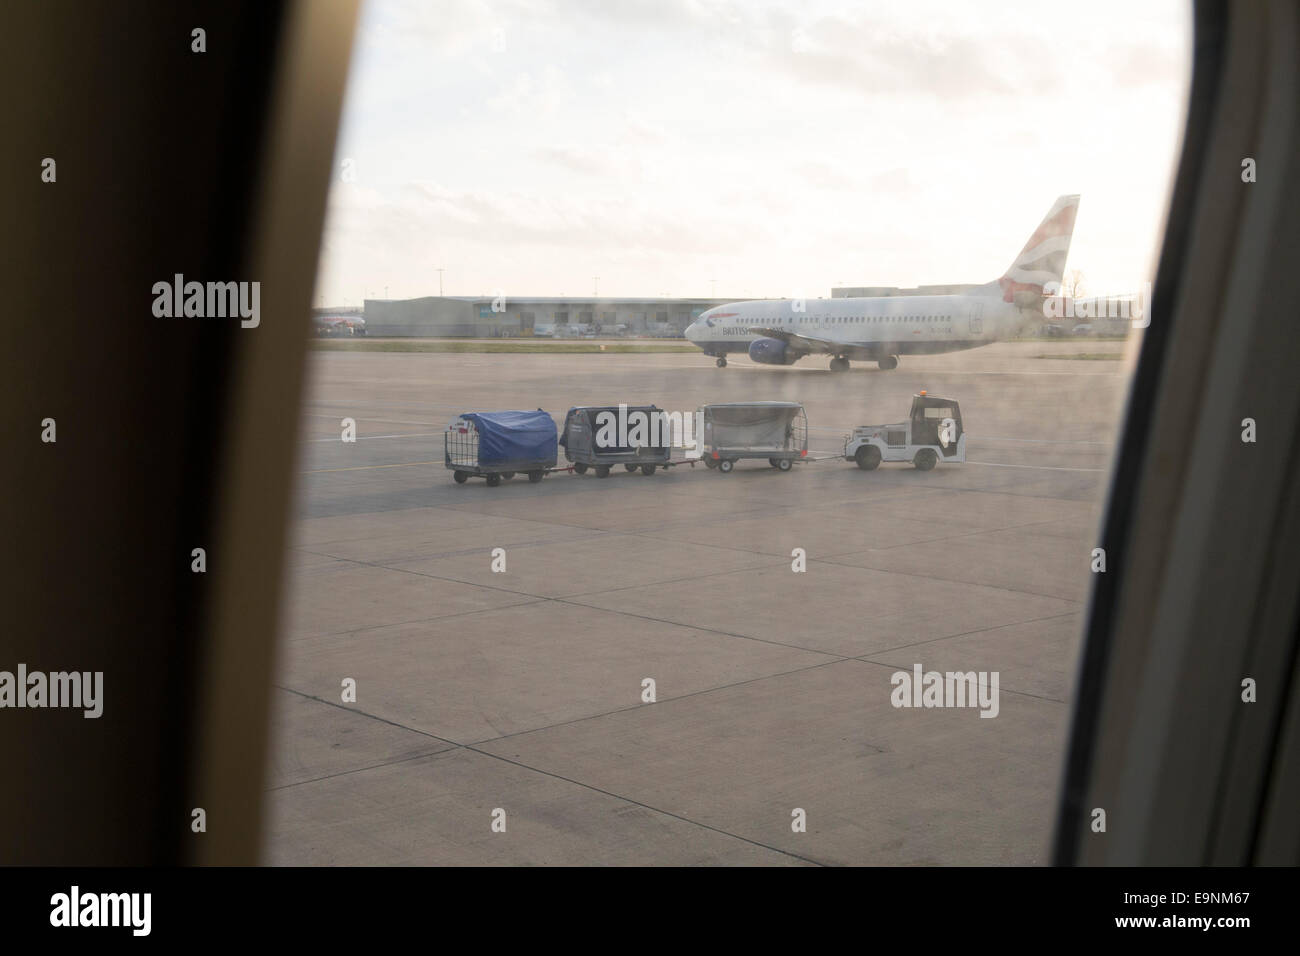 View from an aeroplane window or baggage train, luggage trolleys and plane on the tarmac - Stock Image